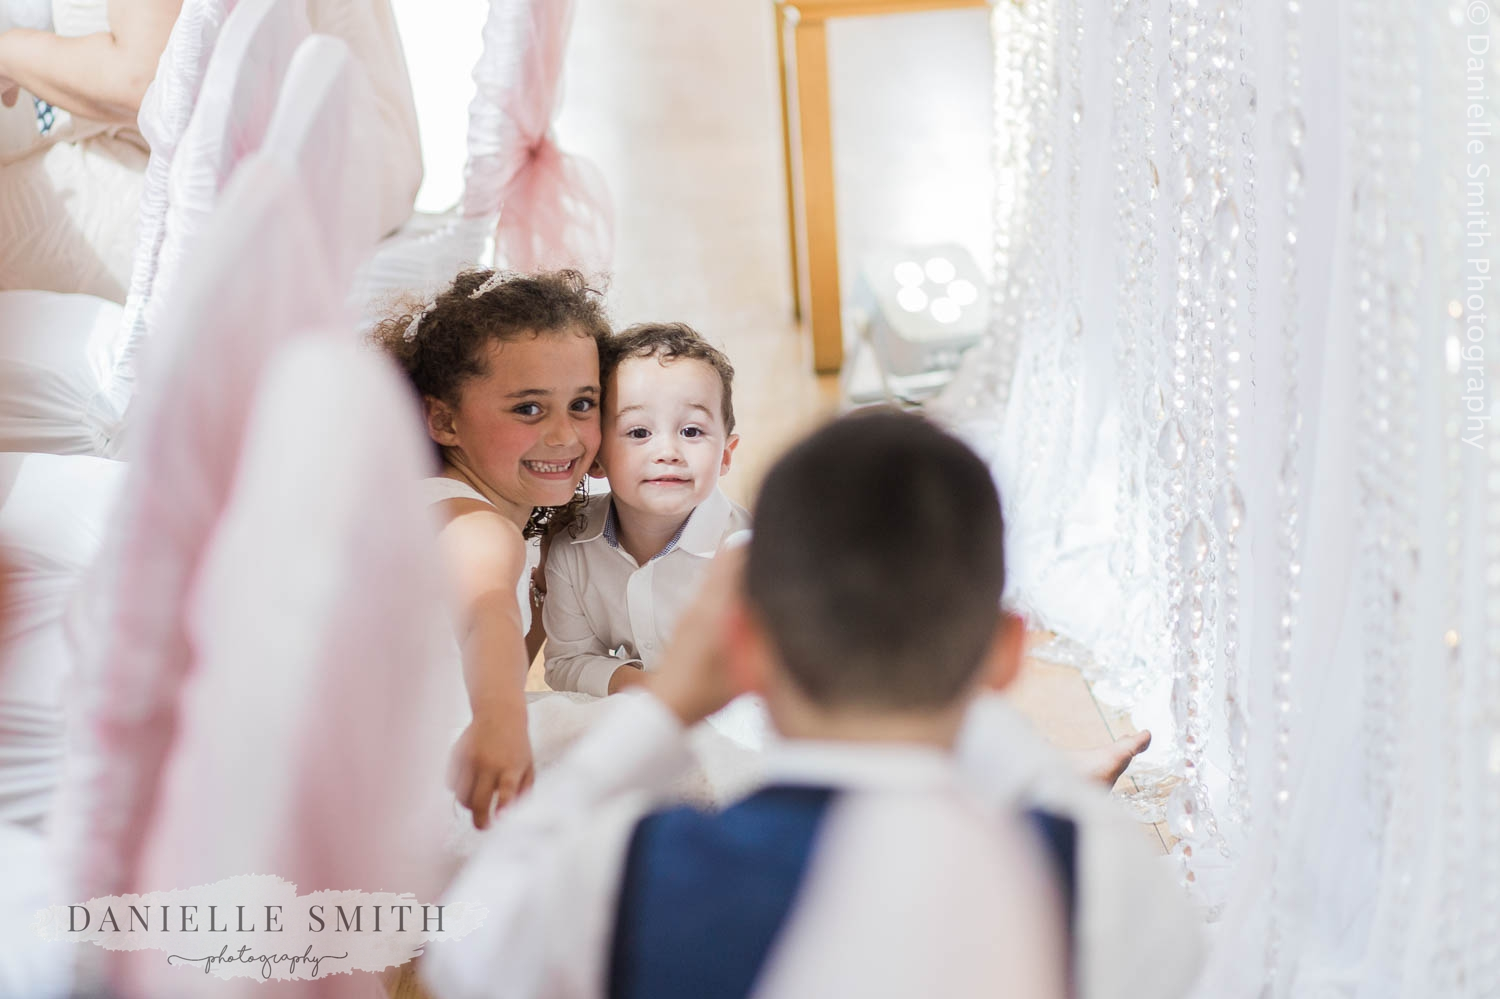 children taking photos of each other at wedding